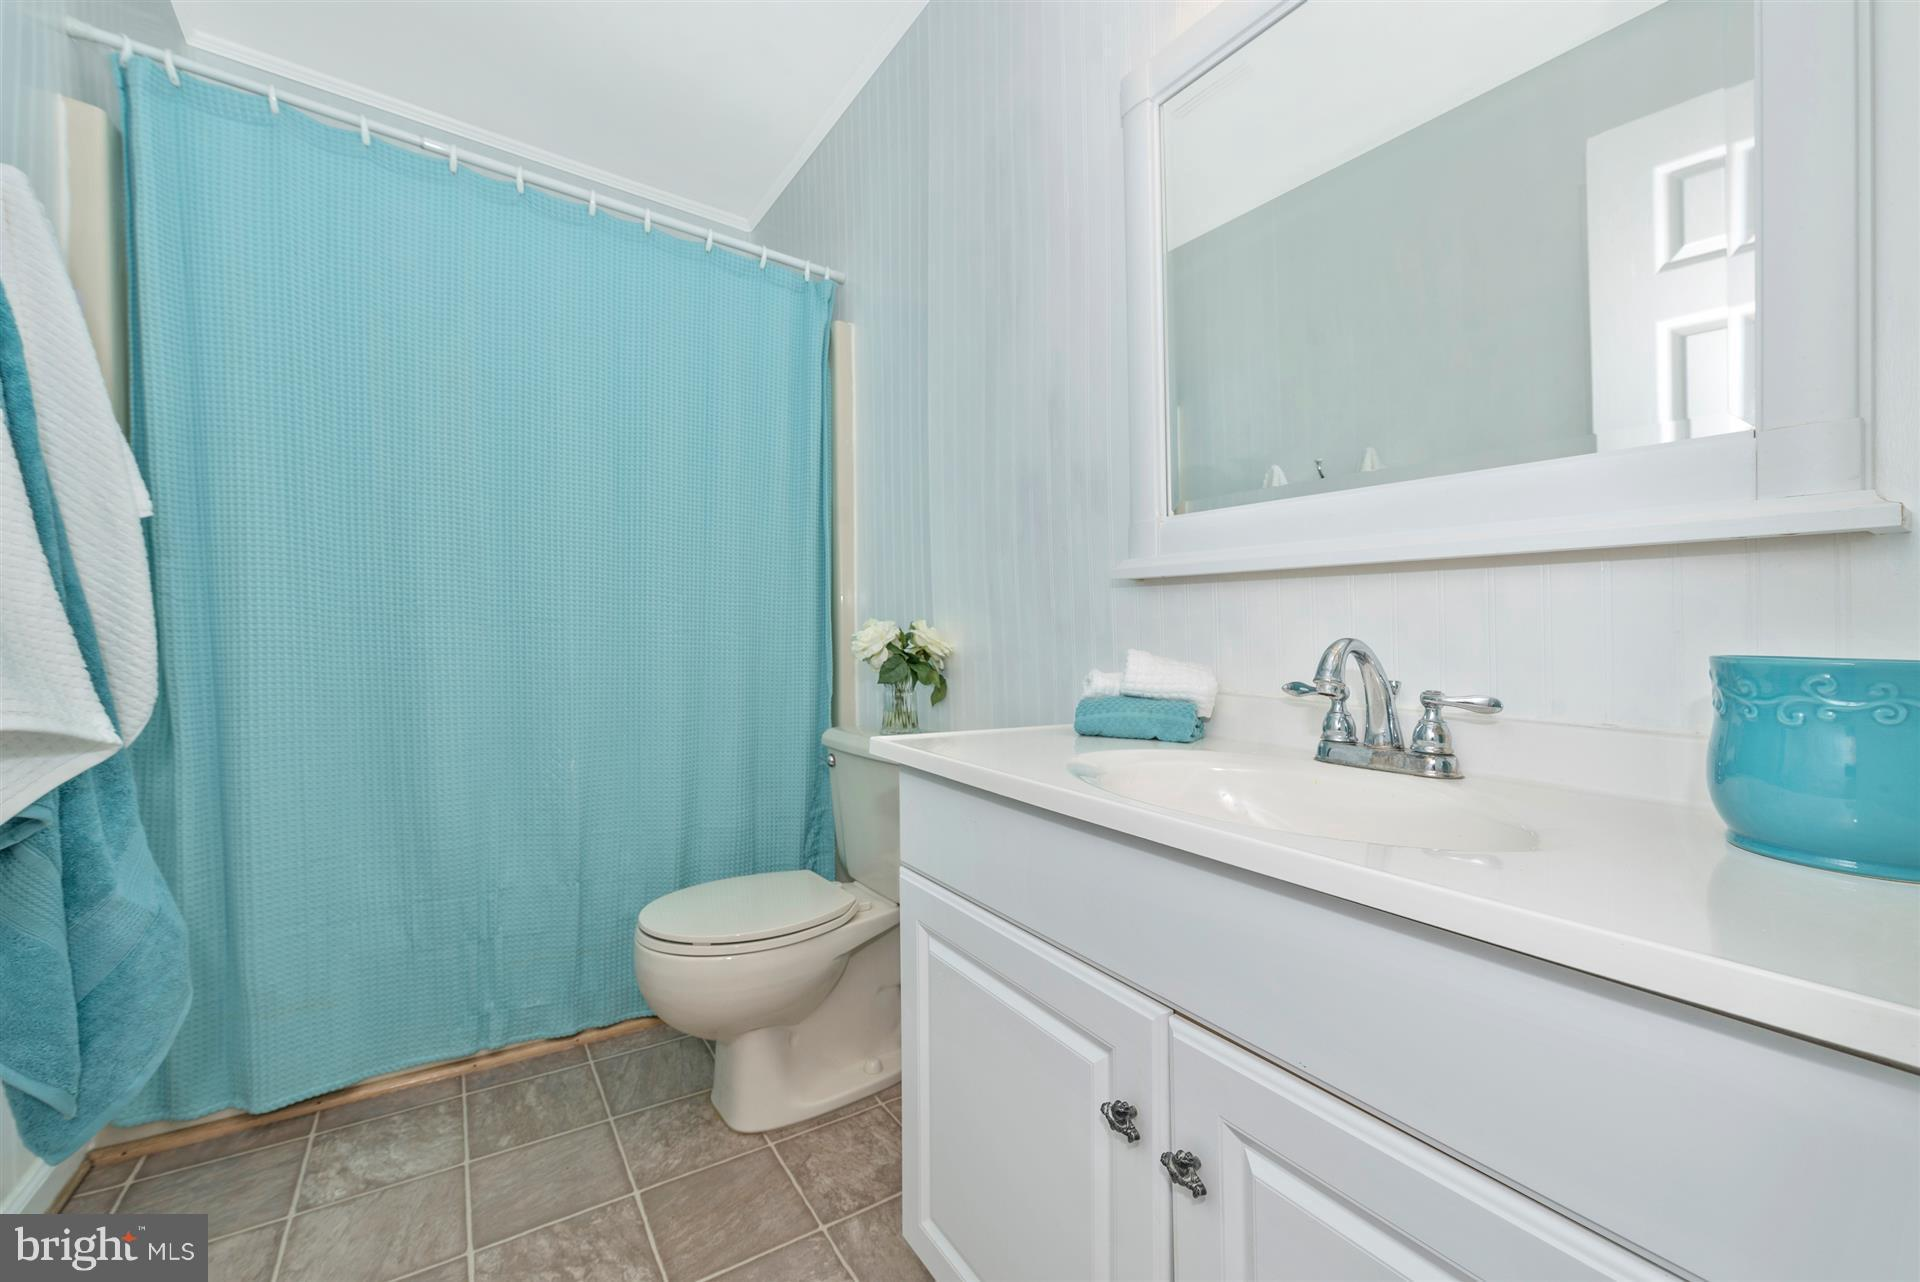 6818 WHISTLING SWAN WAY, New Market, MD 21774, MLS # 1002993092 | RE ...